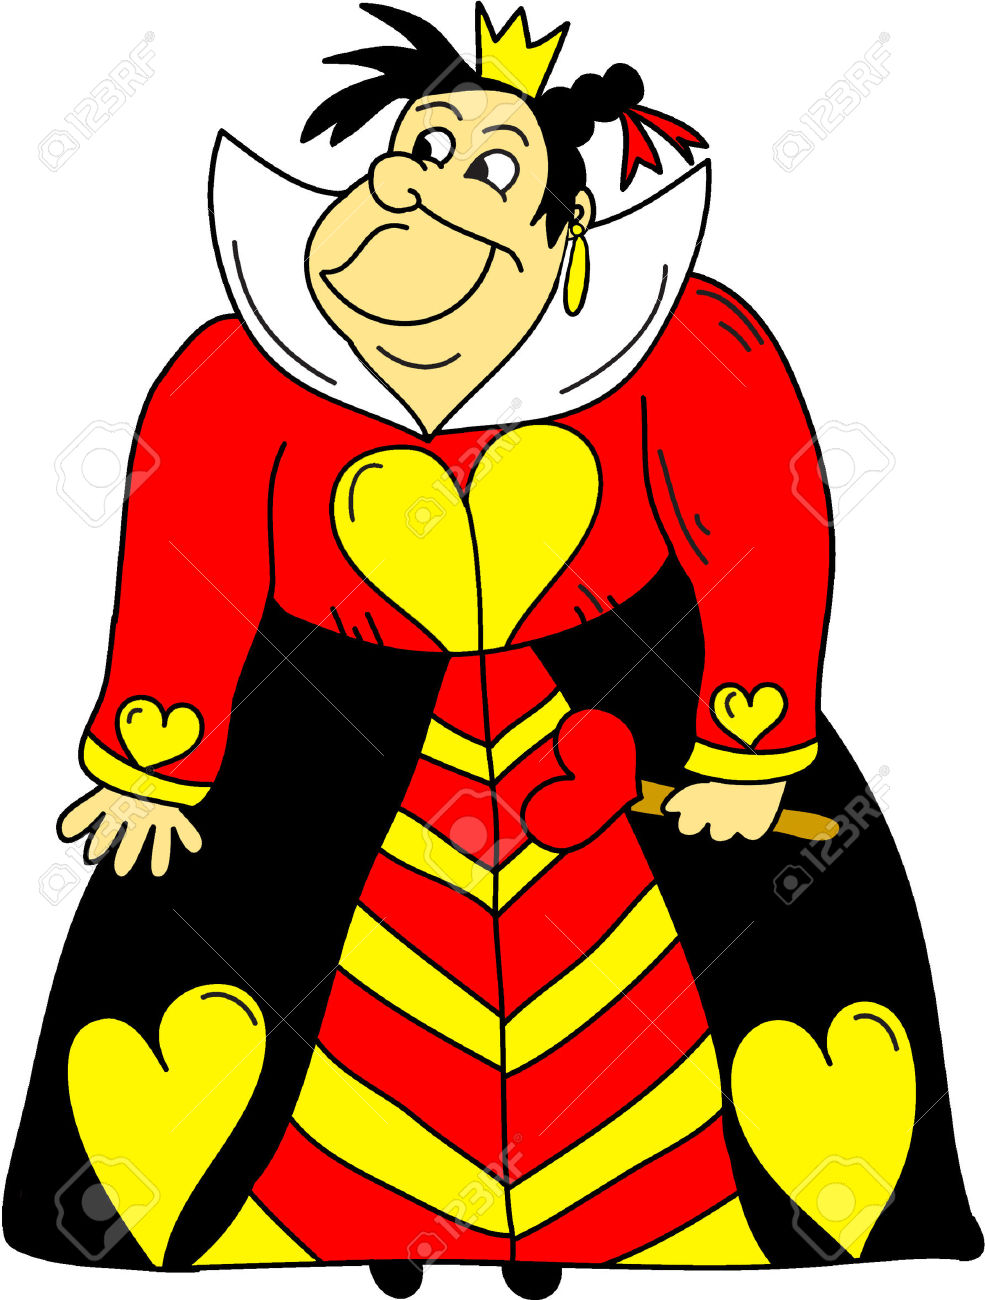 The Queen Of Hearts Clipart- Alice In Wonderland Cartoons Royalty ... image freeuse